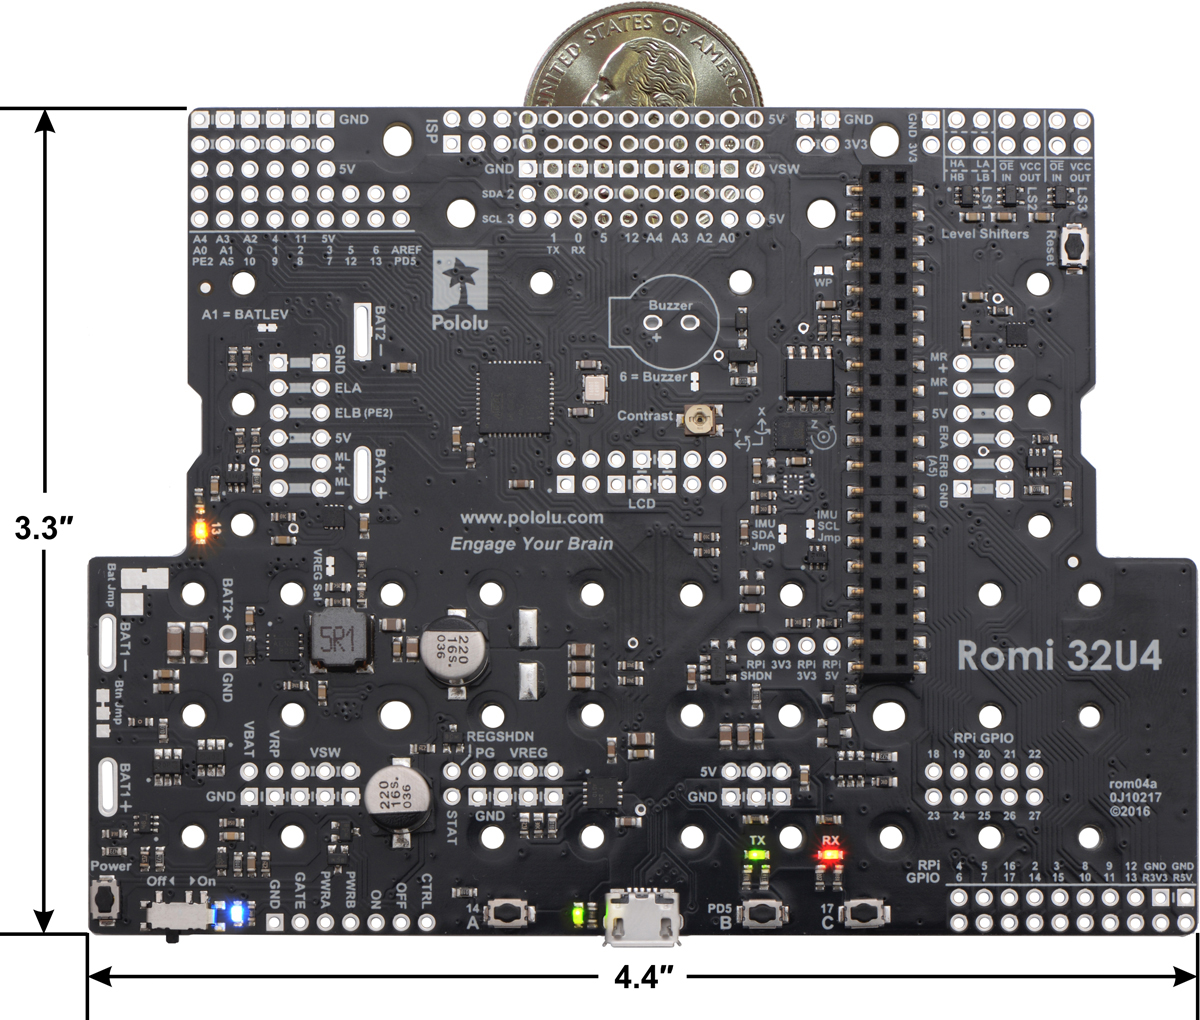 Pololu Romi 32u4 Control Board Basics Updated Using An Accelerometer With Avr Microcontroller Overview